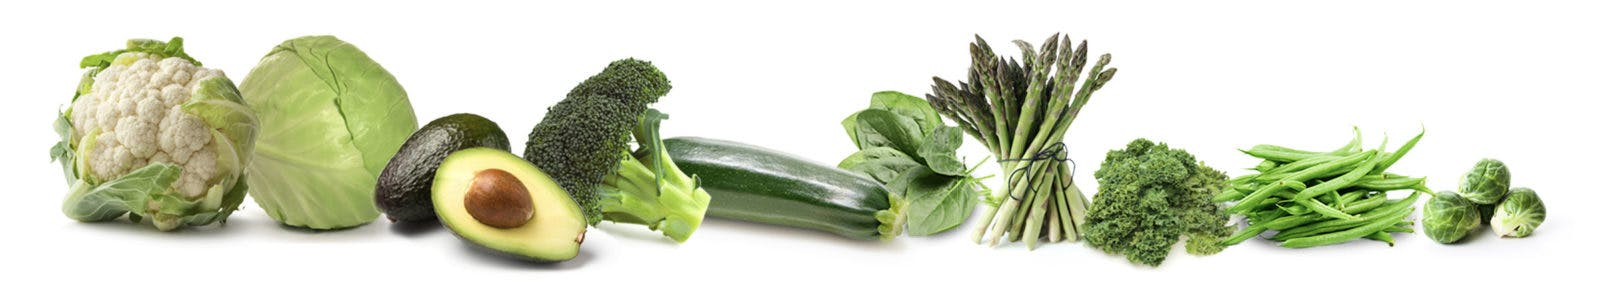 LC-BG-veggies3_top10_2-1600×303